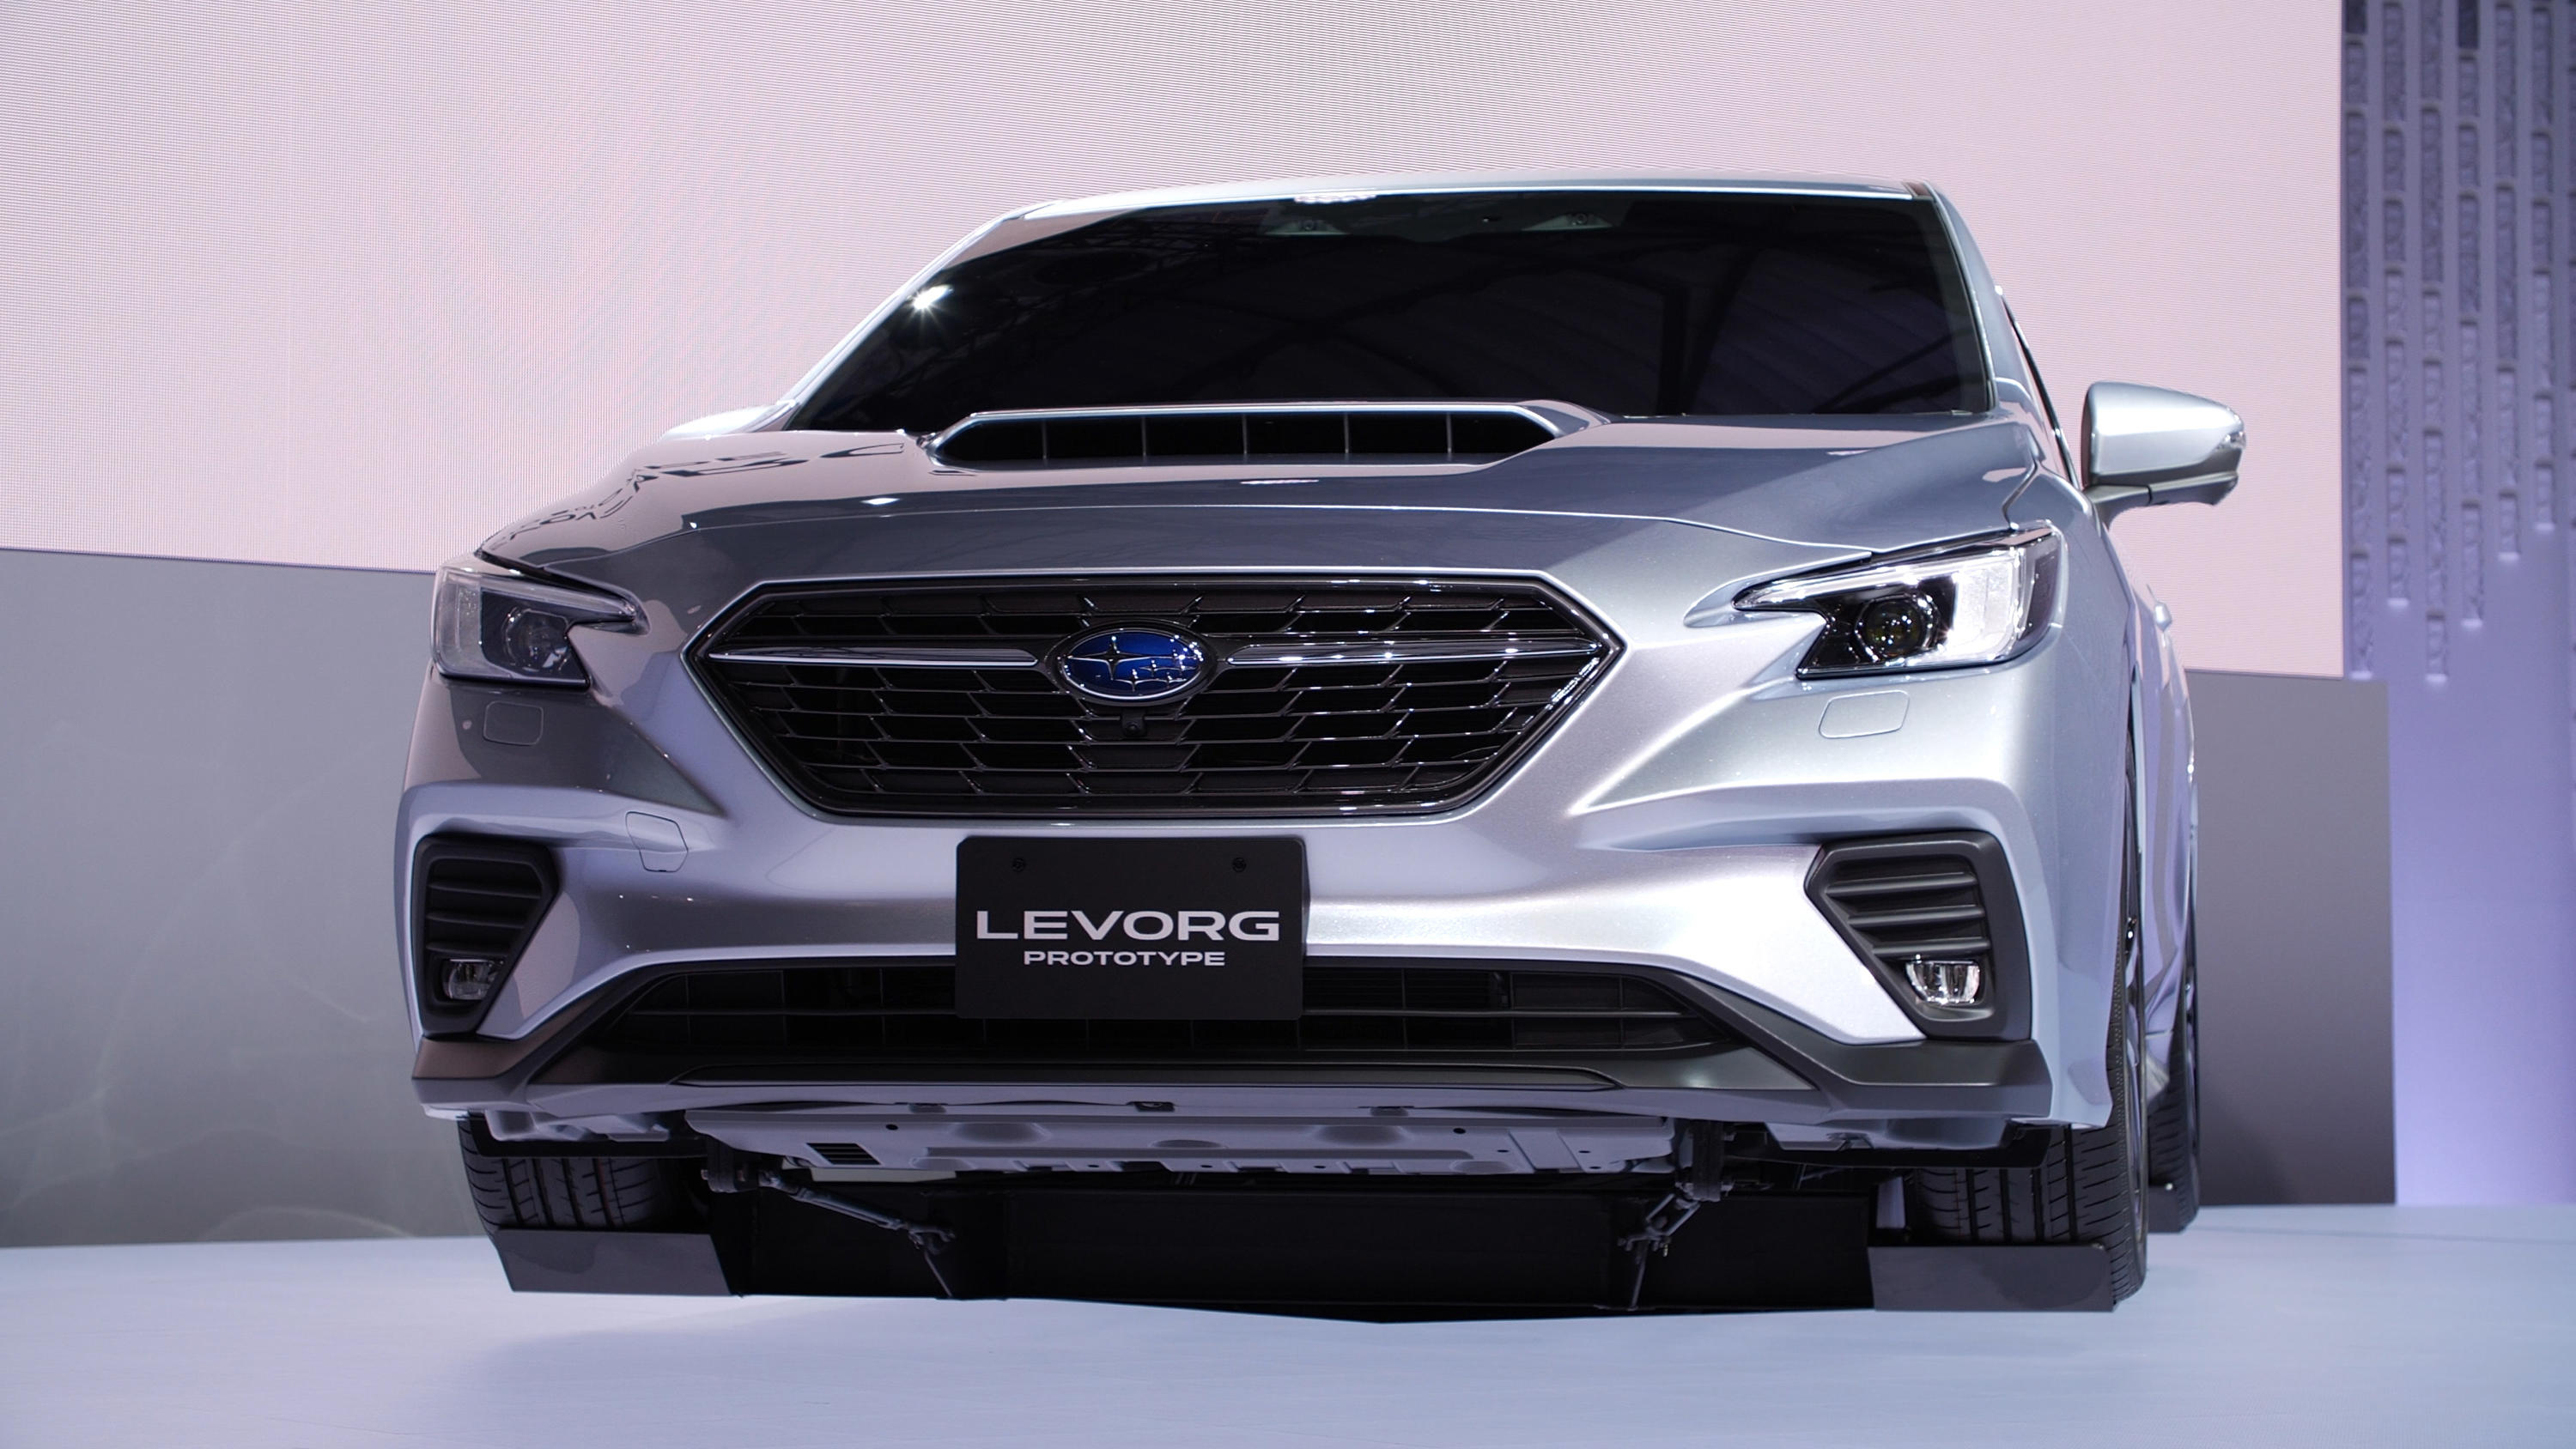 Video: Subaru Levorg Prototype: We won't get the wagon, but we may get the tech